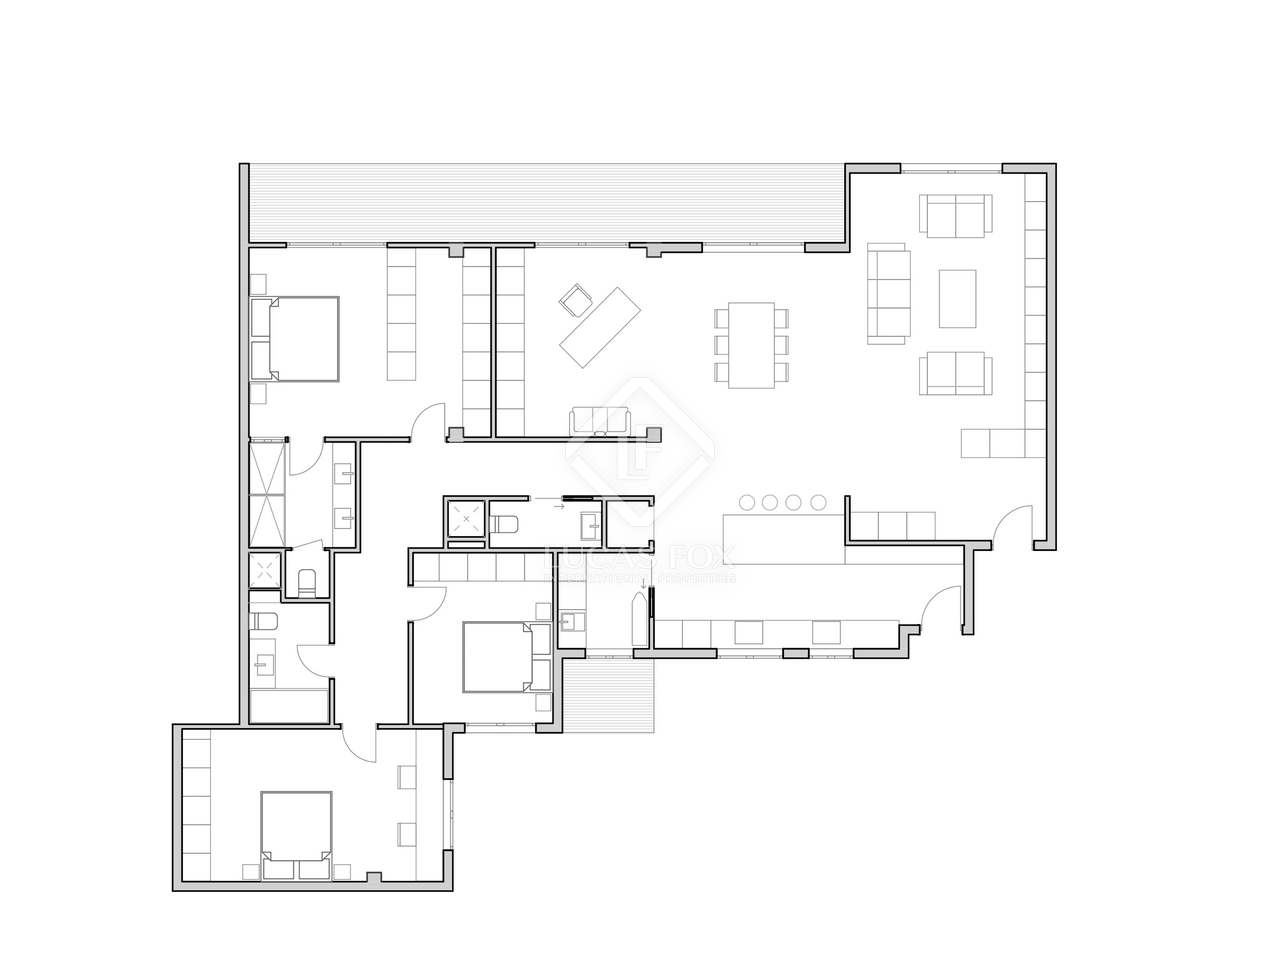 Image of the property : 1